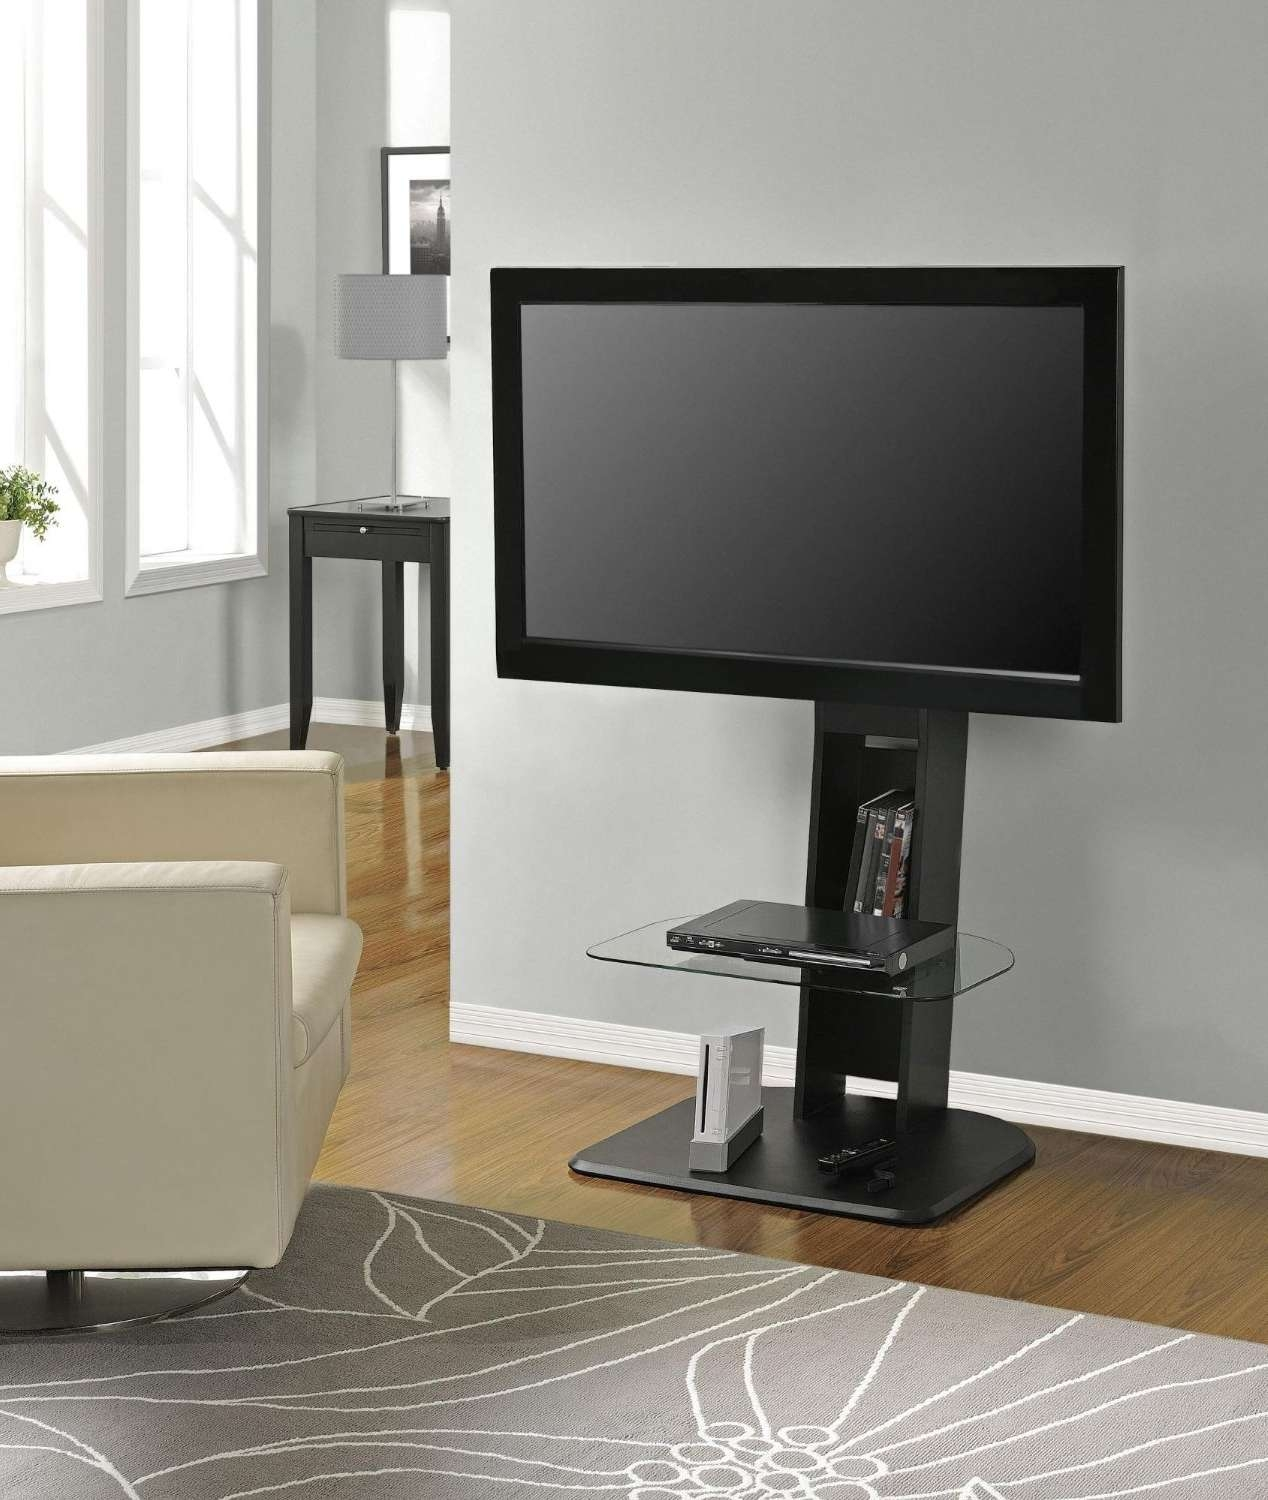 Tv : Small Tv Stands On Wheels Perfect Small White Tv Stand On Throughout Small Tv Stands On Wheels (View 6 of 20)